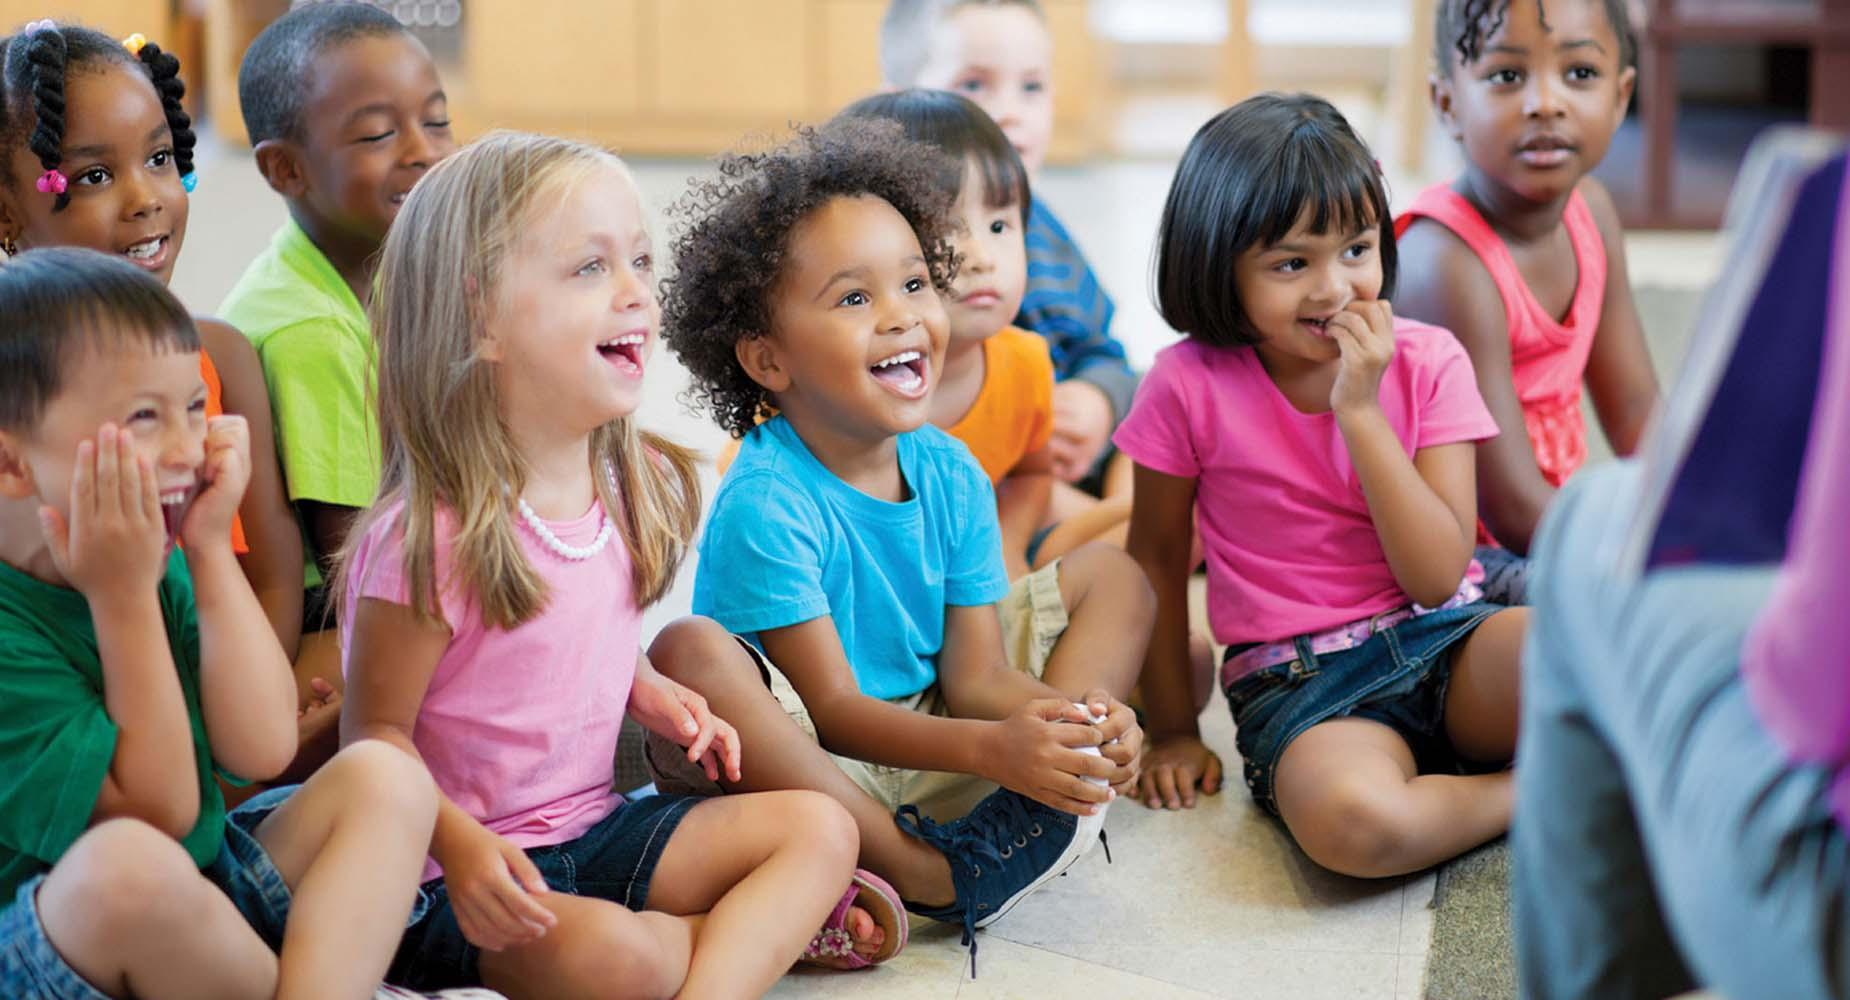 Royalty free stock photo of preschool children